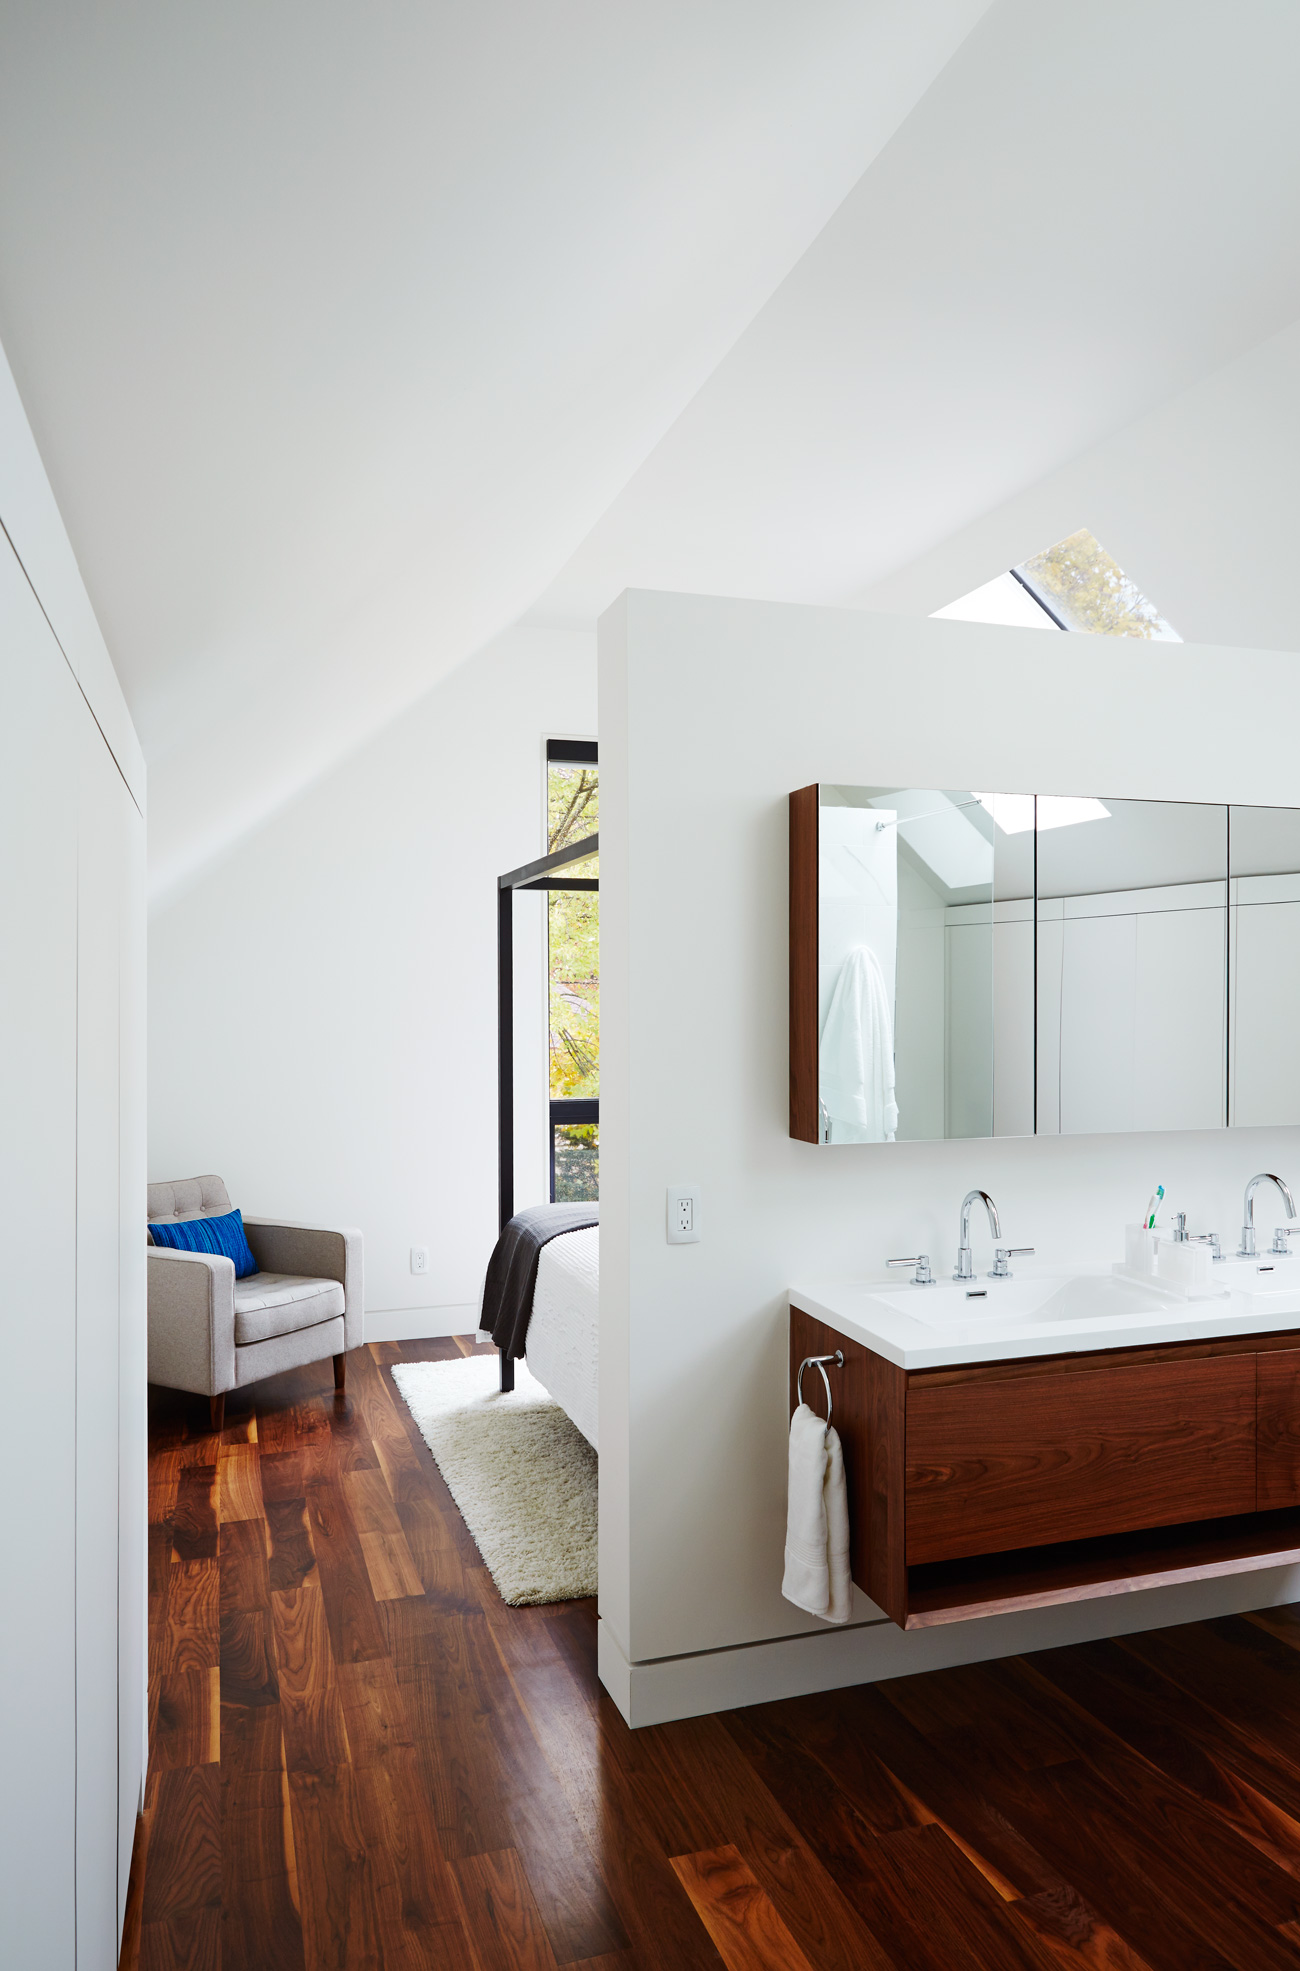 Velux skylights illuminate the cathedral space. Custom vanity with seamless countertop by Rubi; chair from EQ3; bed from Room and Board.